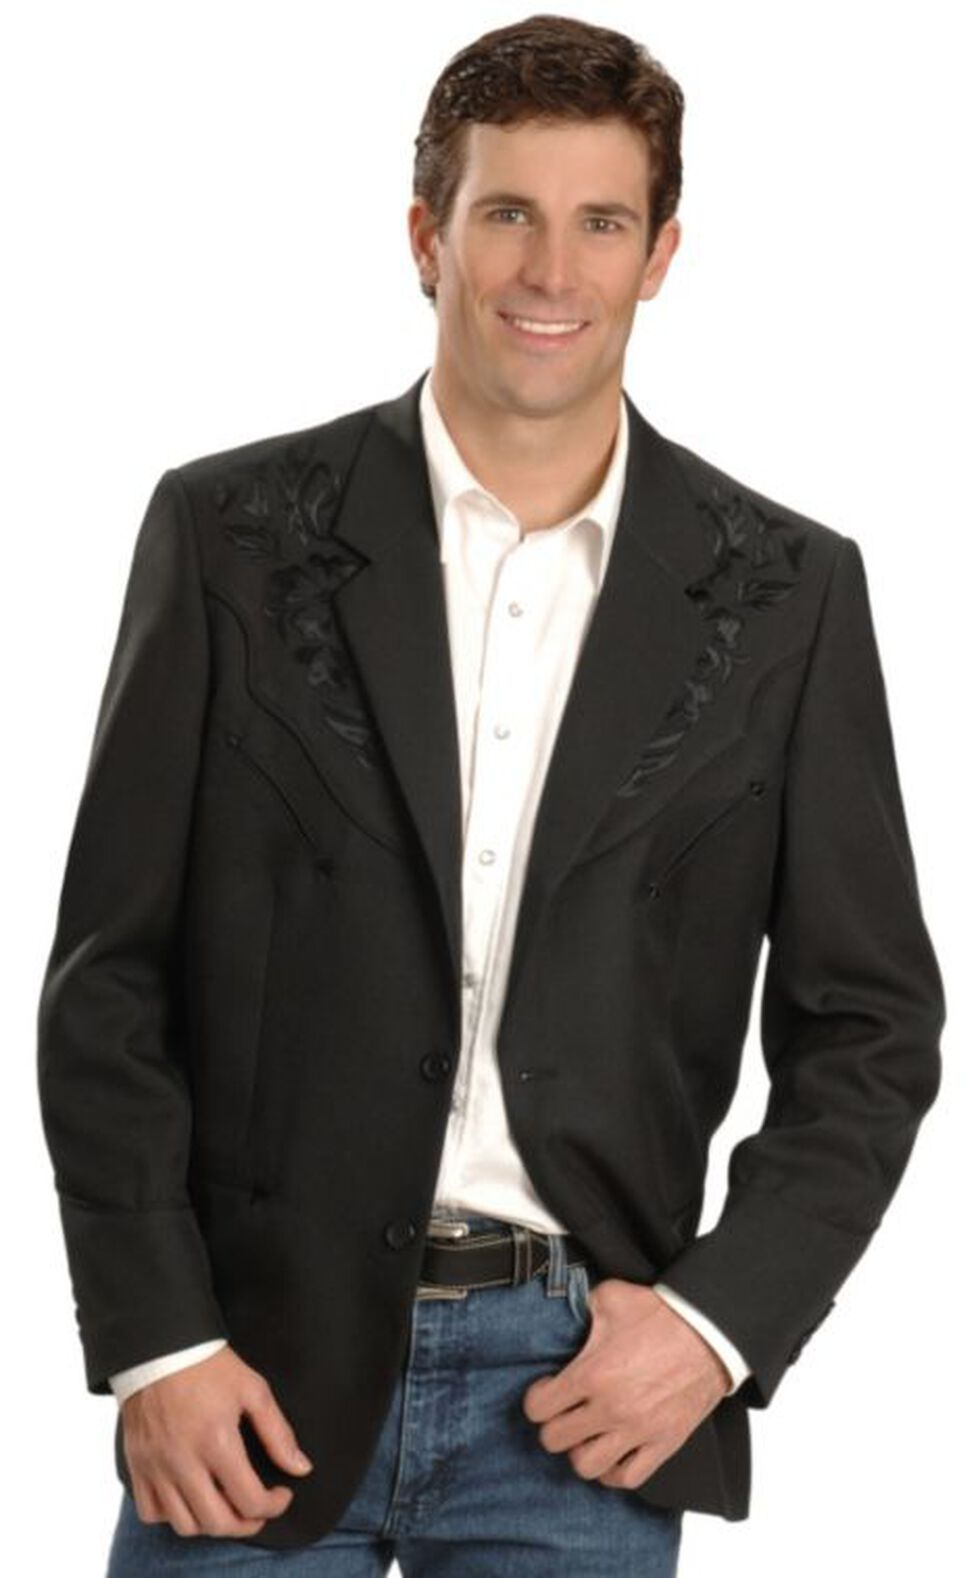 Scully Men's Floral Yoke Blazer - Tall Sizes (40T - 48T), Black, hi-res